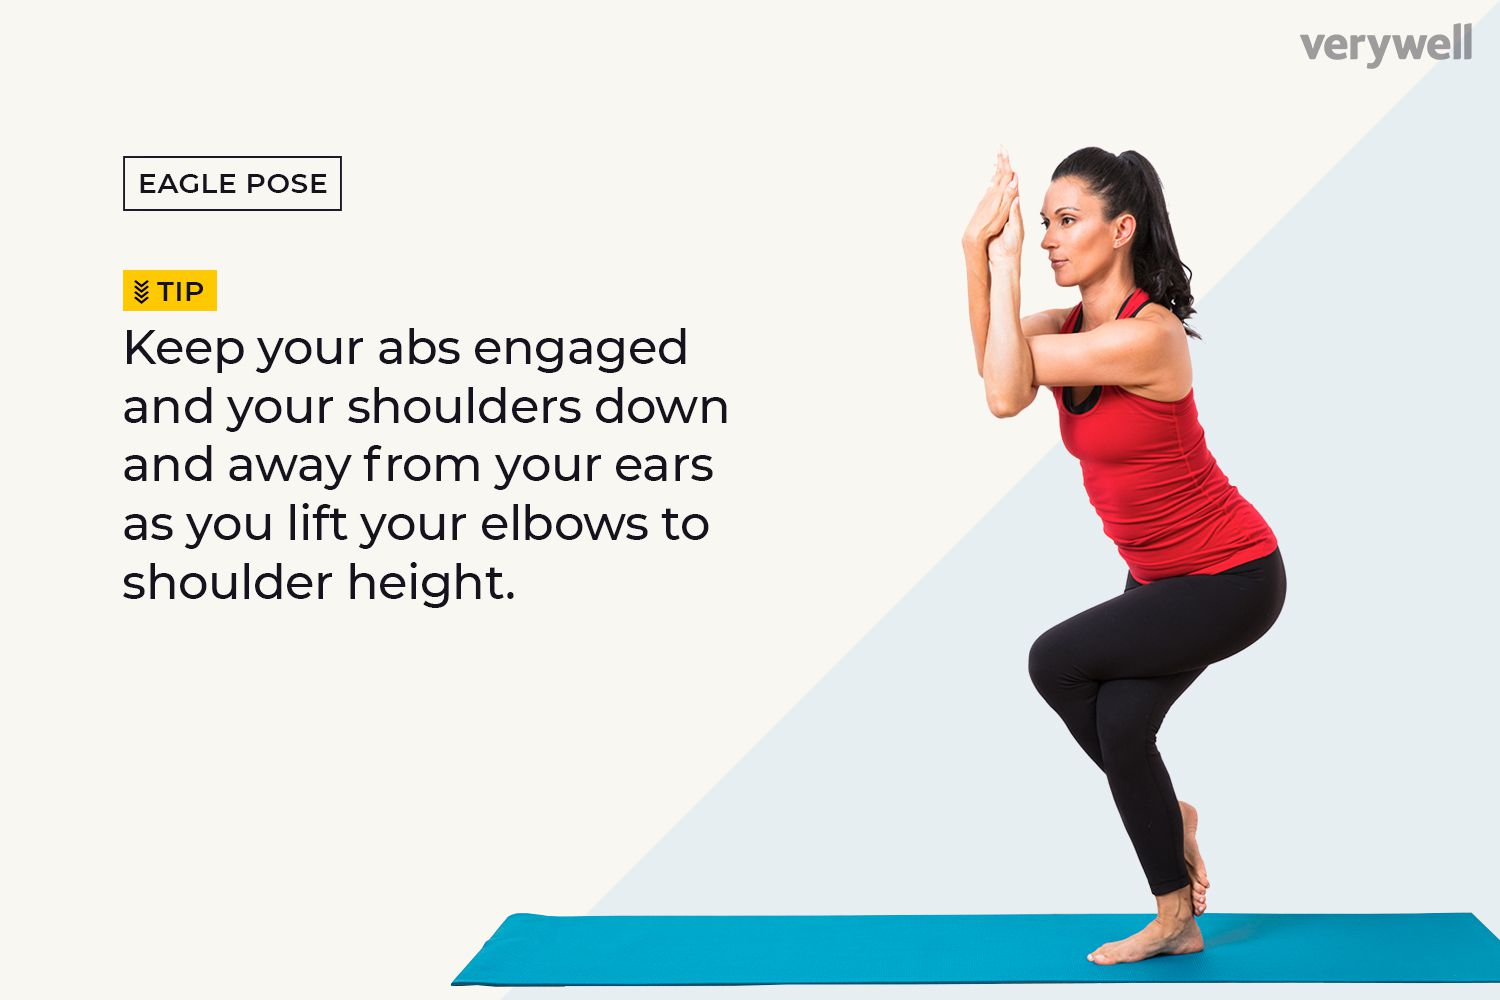 Eagle Pose Muscles Used